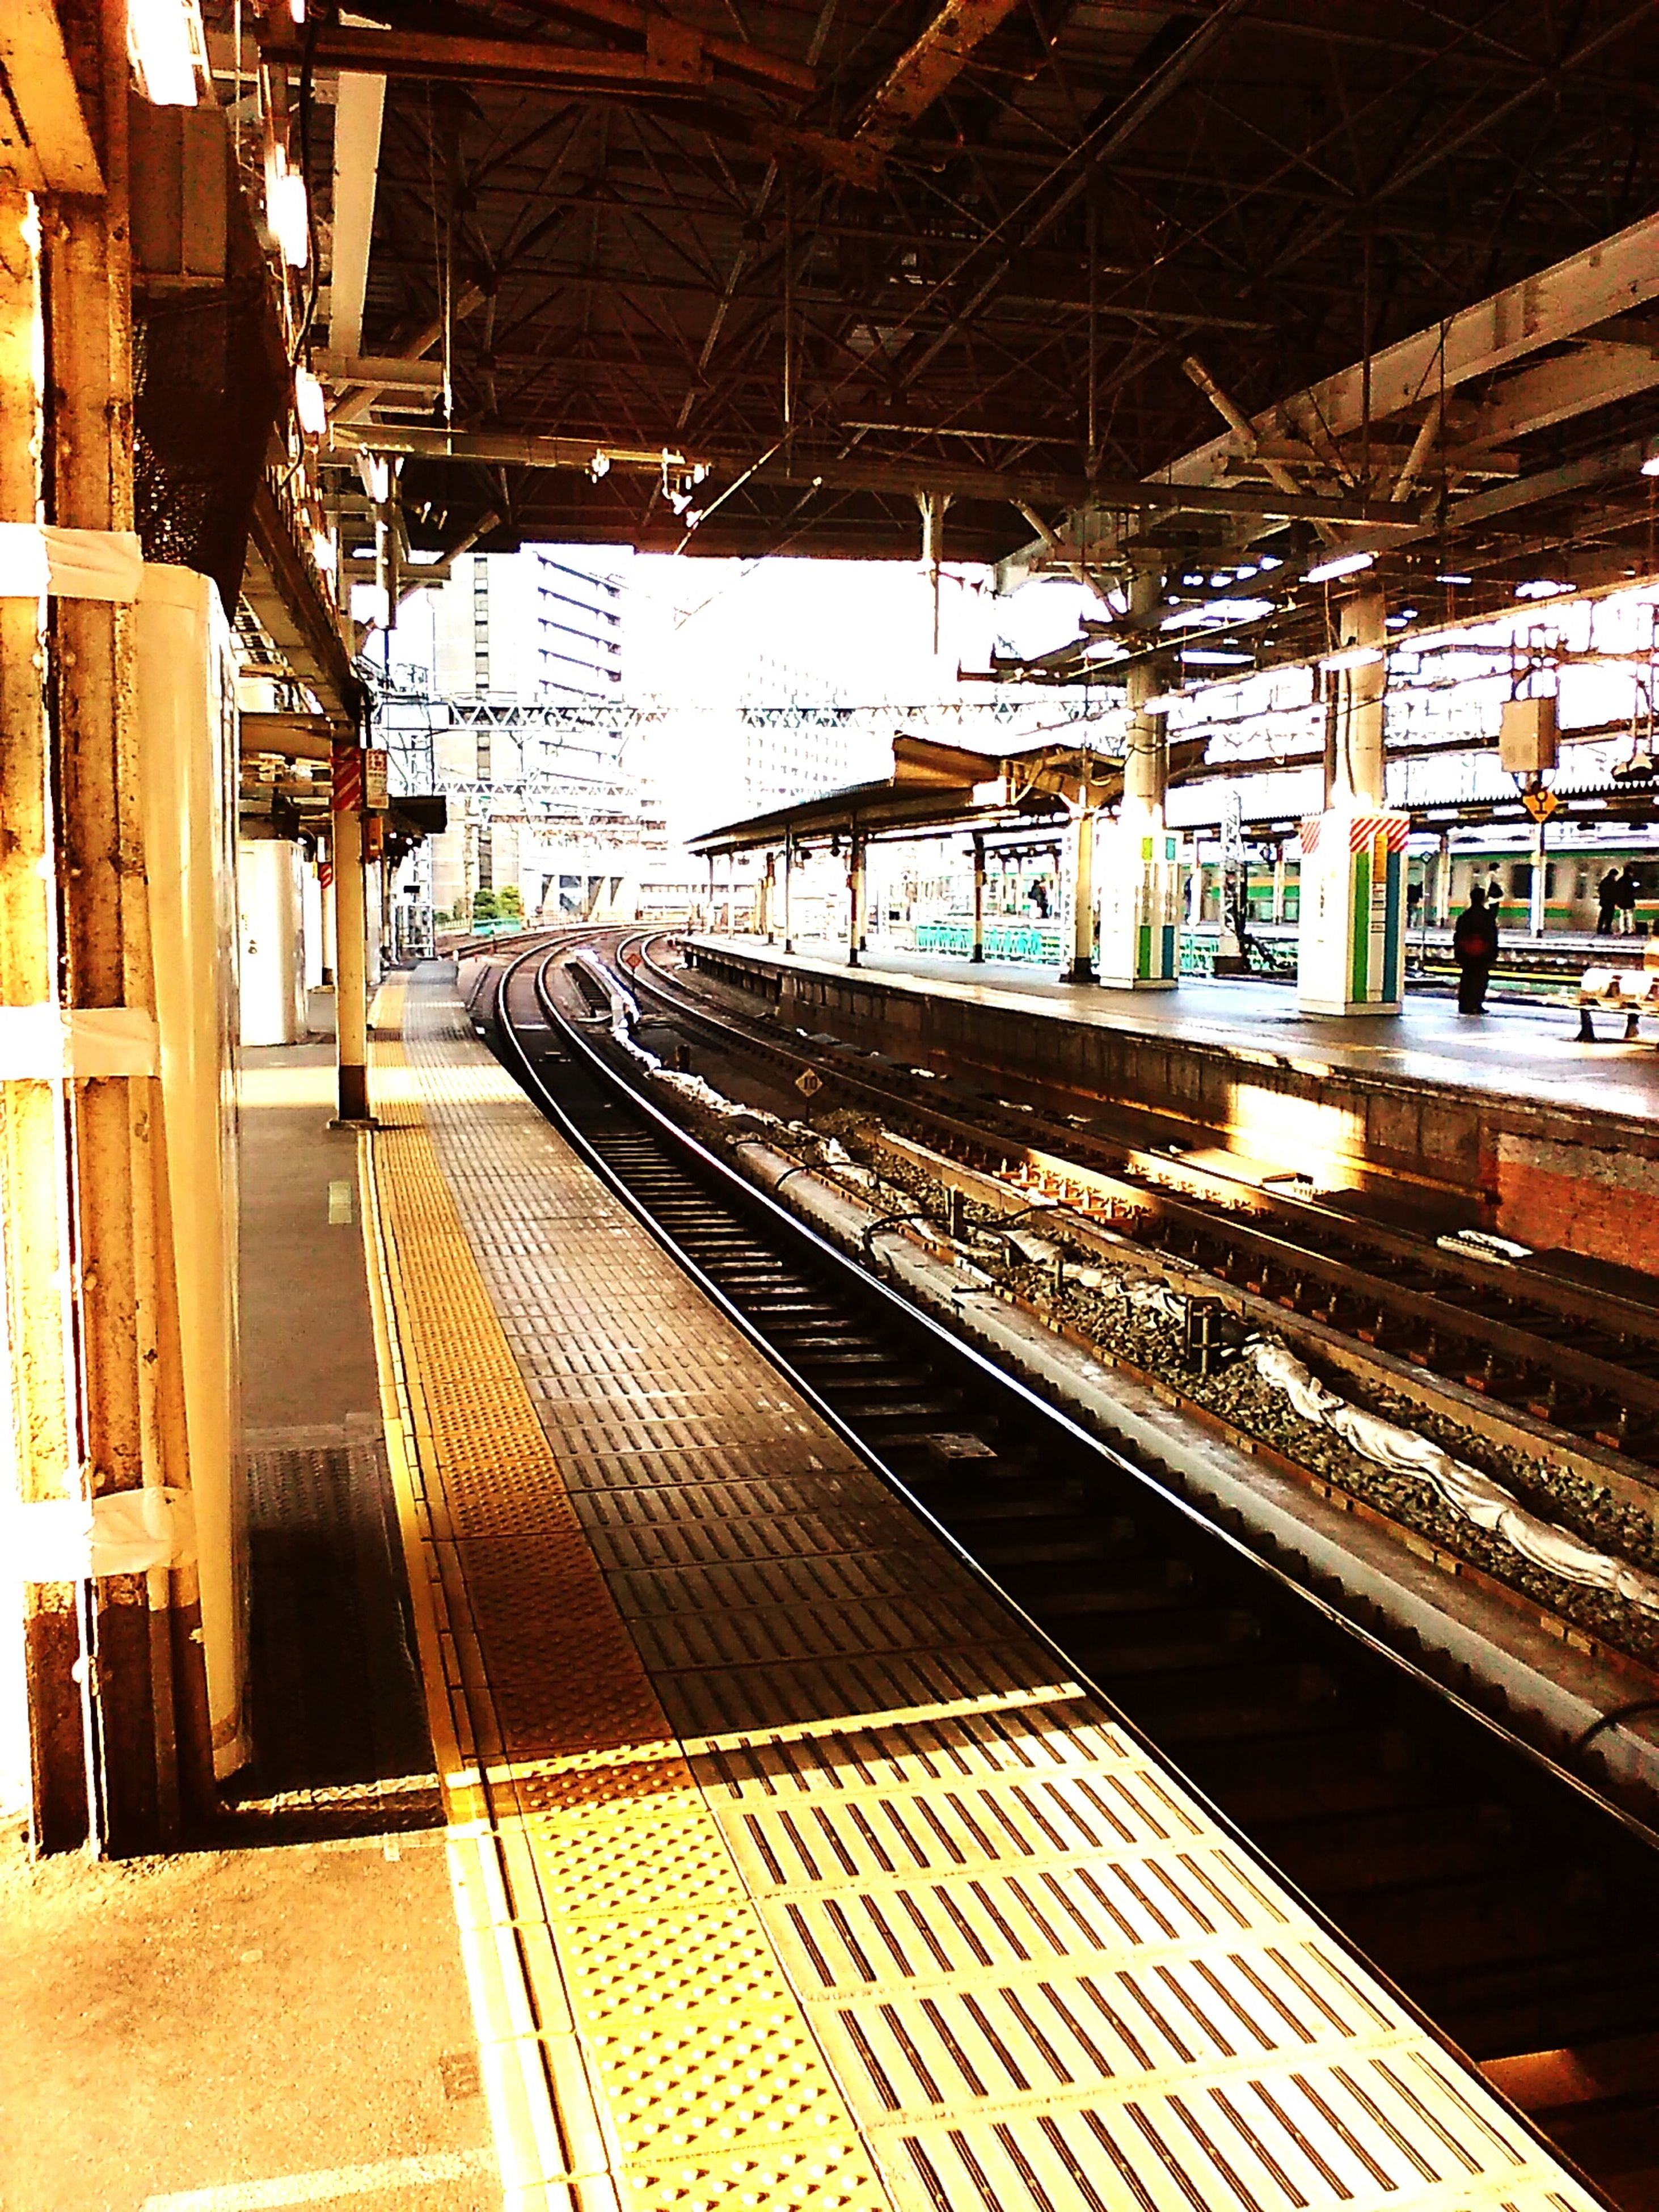 railroad track, transportation, rail transportation, public transportation, railroad station platform, railroad station, train - vehicle, indoors, mode of transport, built structure, travel, train, passenger train, public transport, architecture, illuminated, railway track, the way forward, diminishing perspective, high angle view